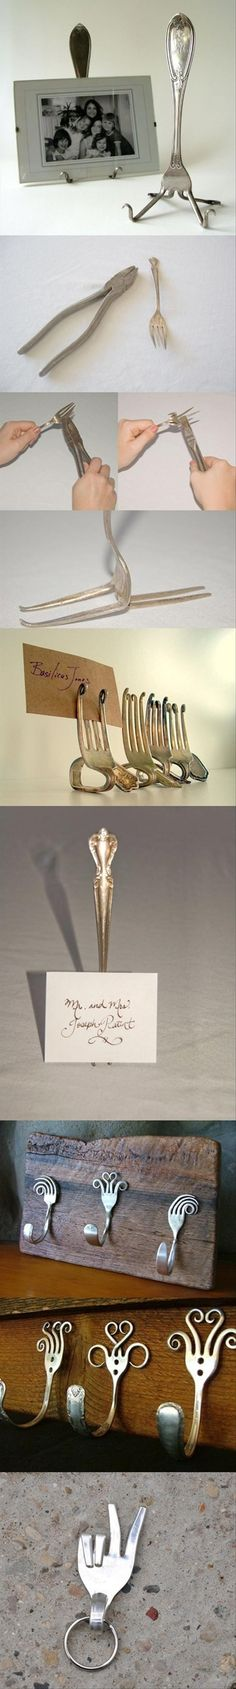 Forks into fun things!  Yes, I think I could do these and love the place card holders and the key ring.